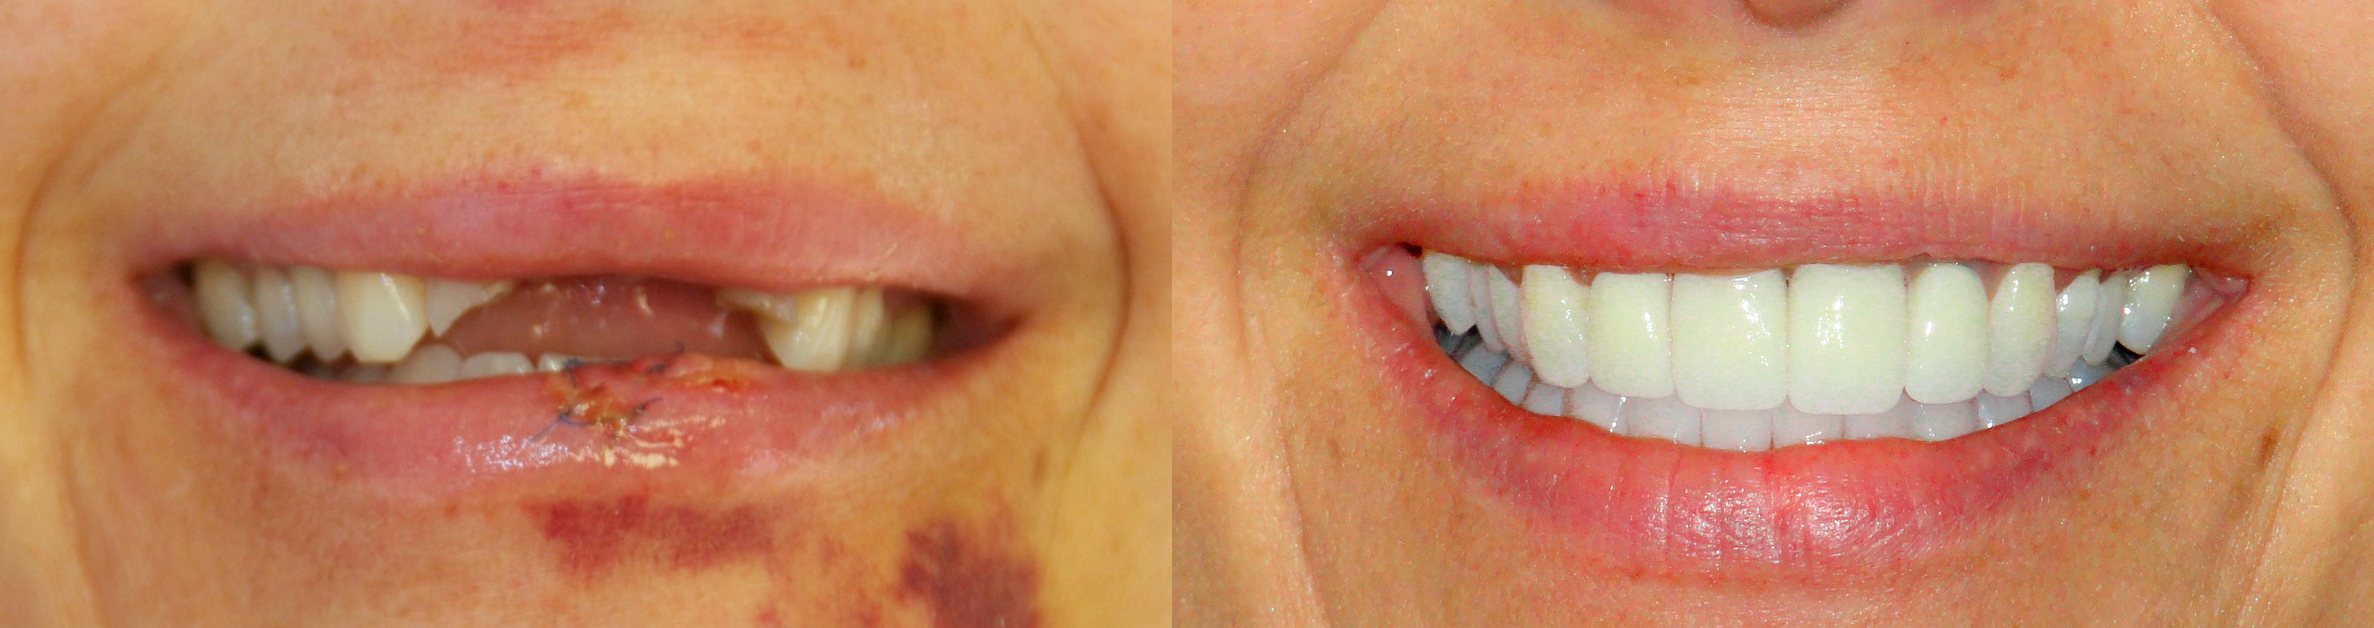 This patient came to Dr. Ingram after an unfortunate accident left her front teeth destroyed.